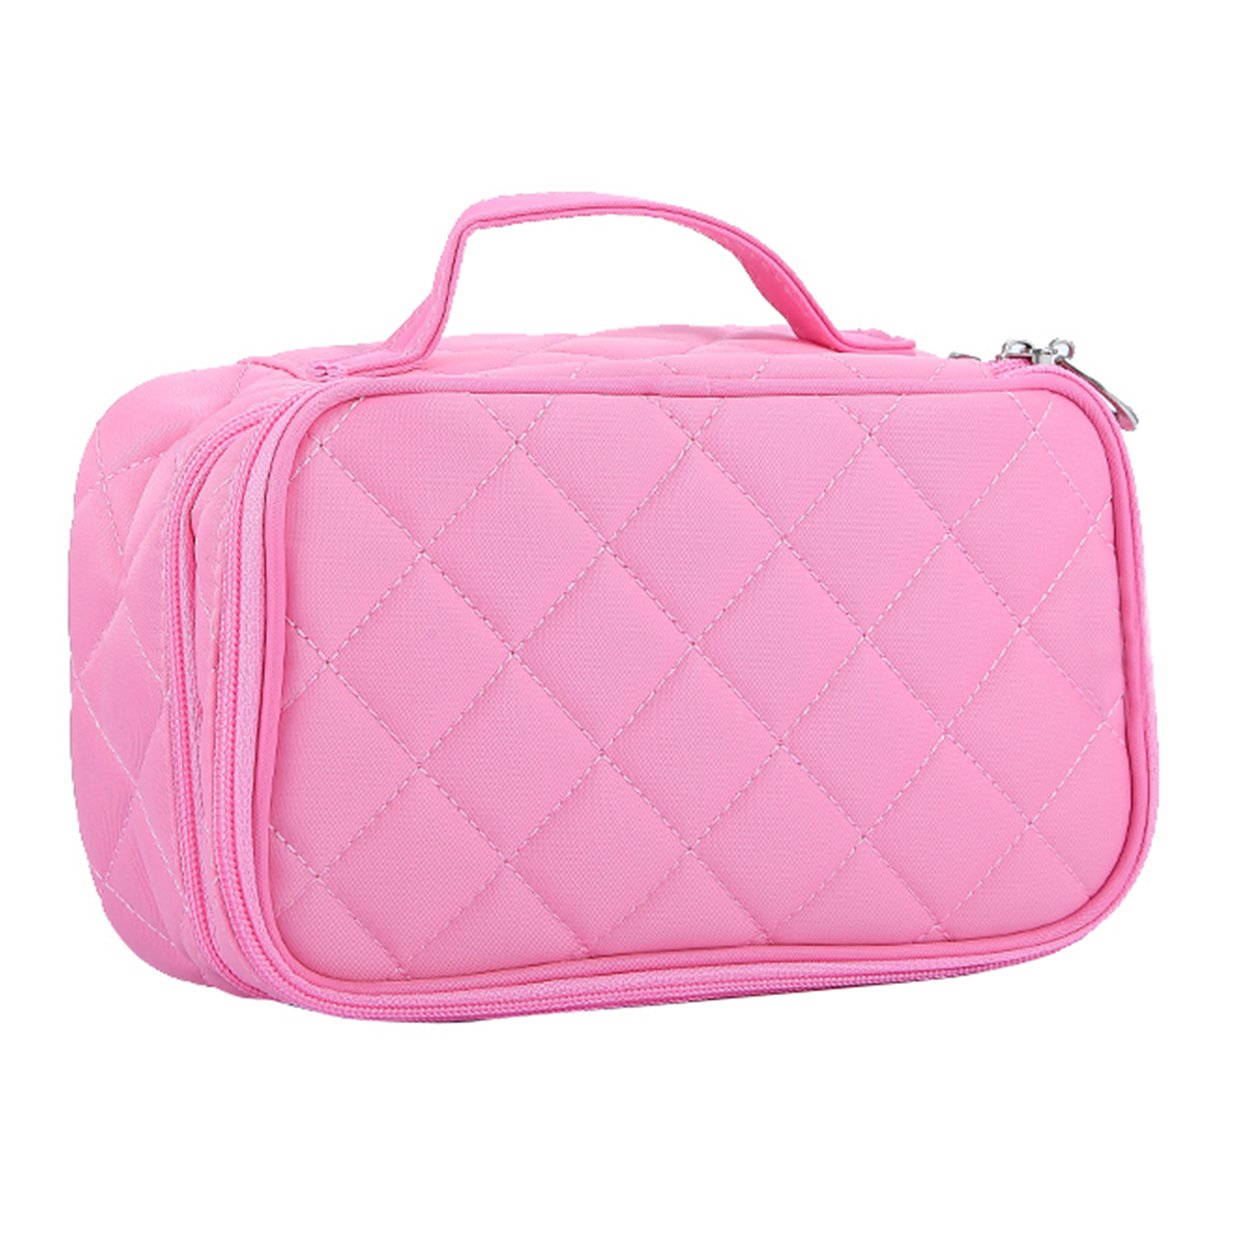 db972d8fdefe HOYOFO Double-Sided Cosmetic Pouch Bag for Travel Makeup Brush Organizer  Makeup Bag, Big...